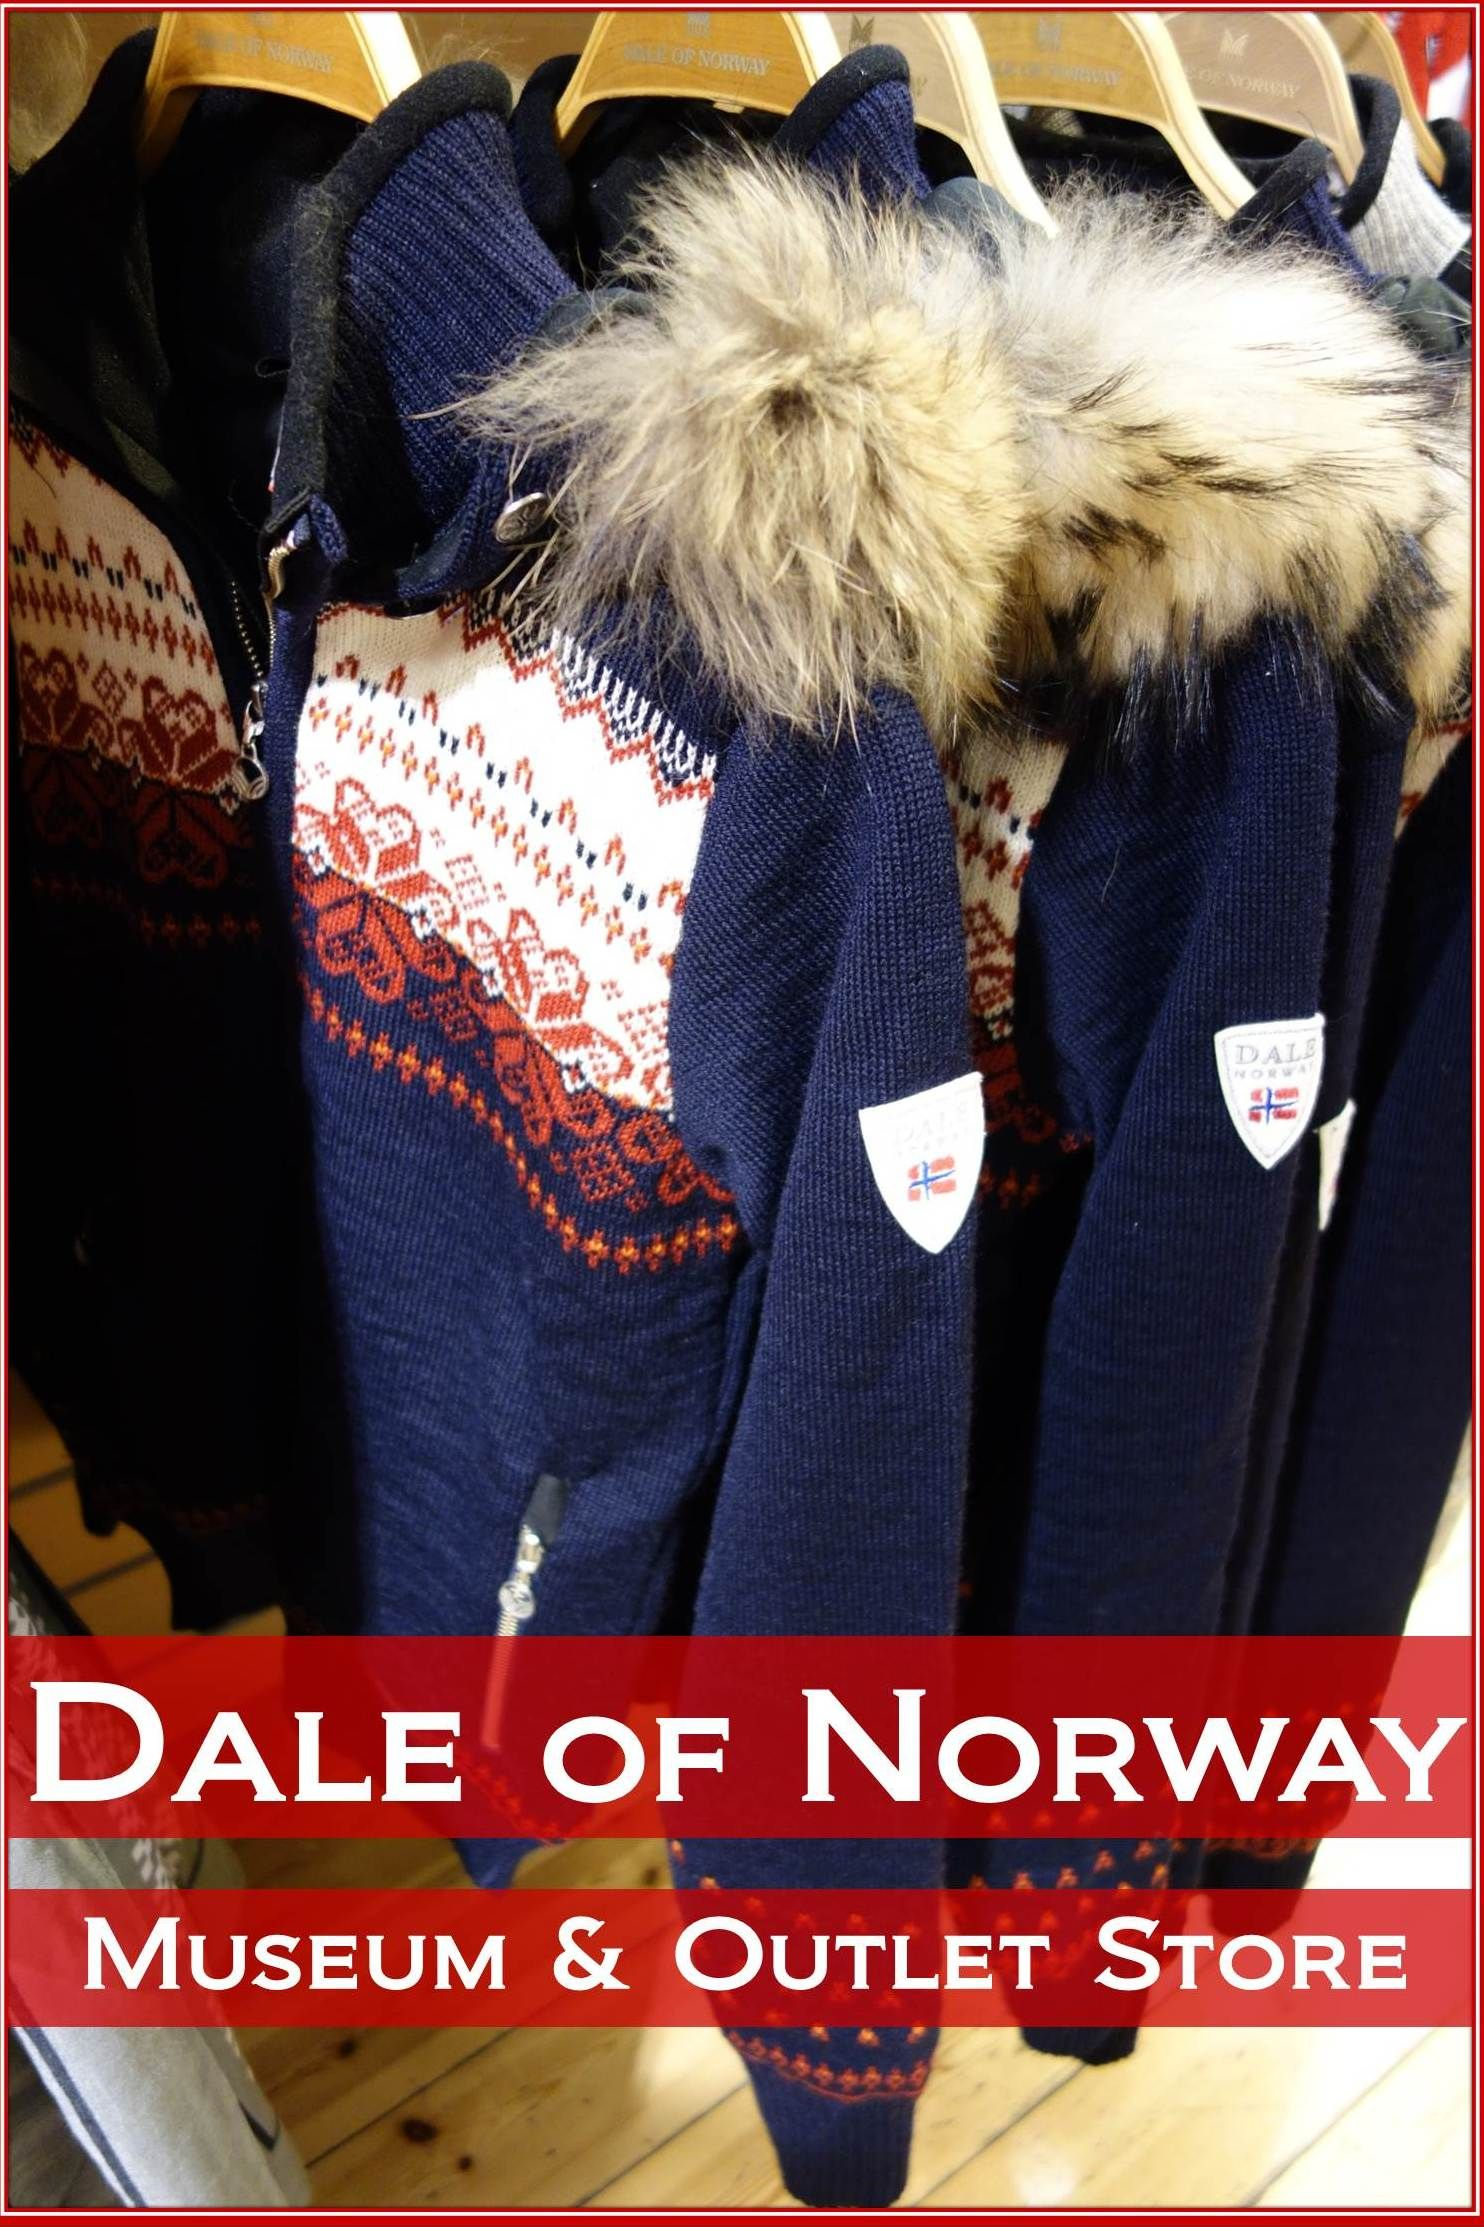 One Of The Best Souvenirs You Can Buy While Visiting Norway Is A